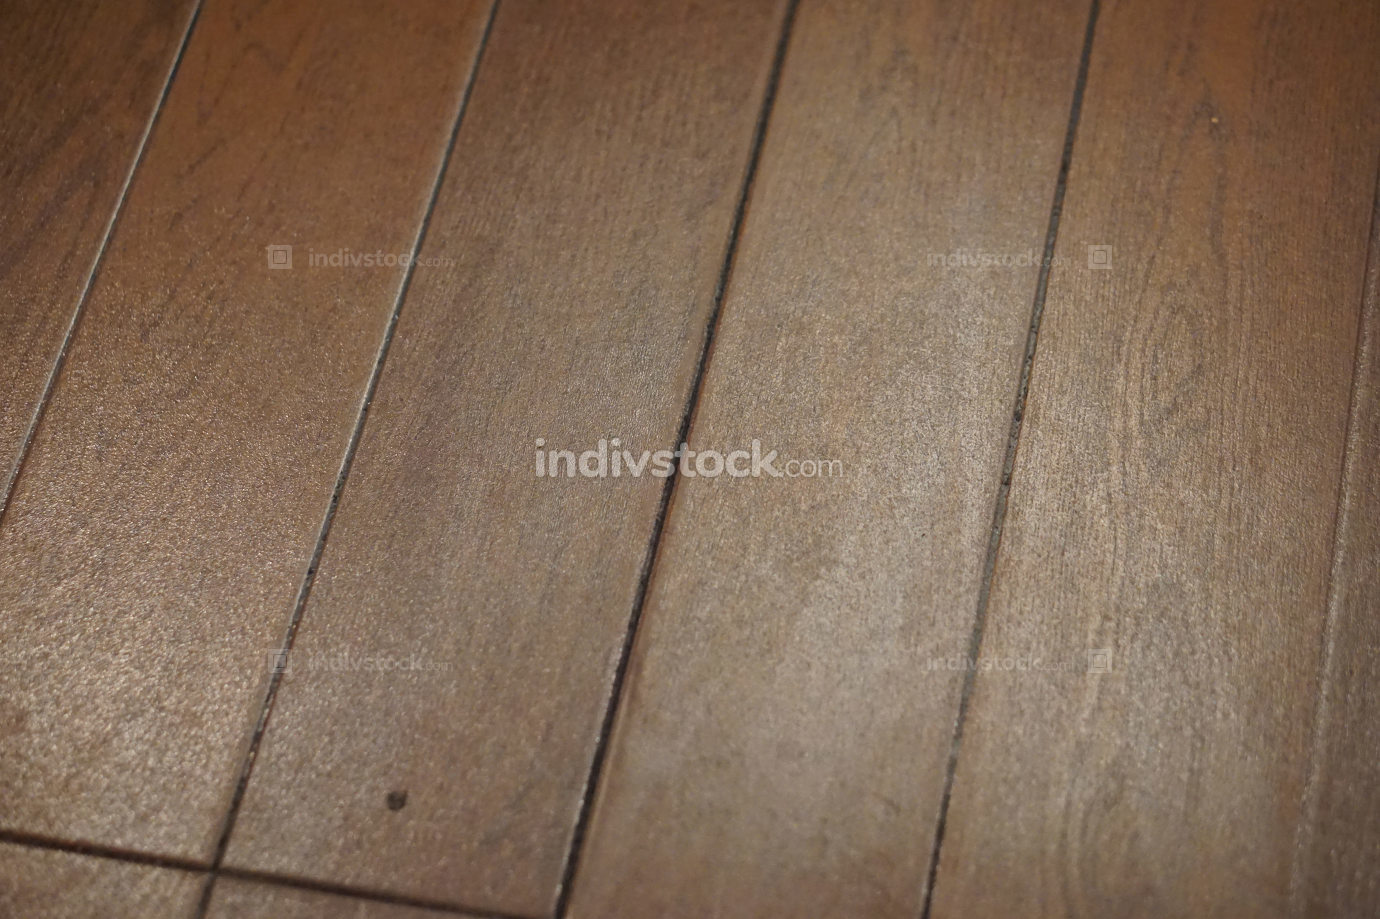 free download: wooden floor background